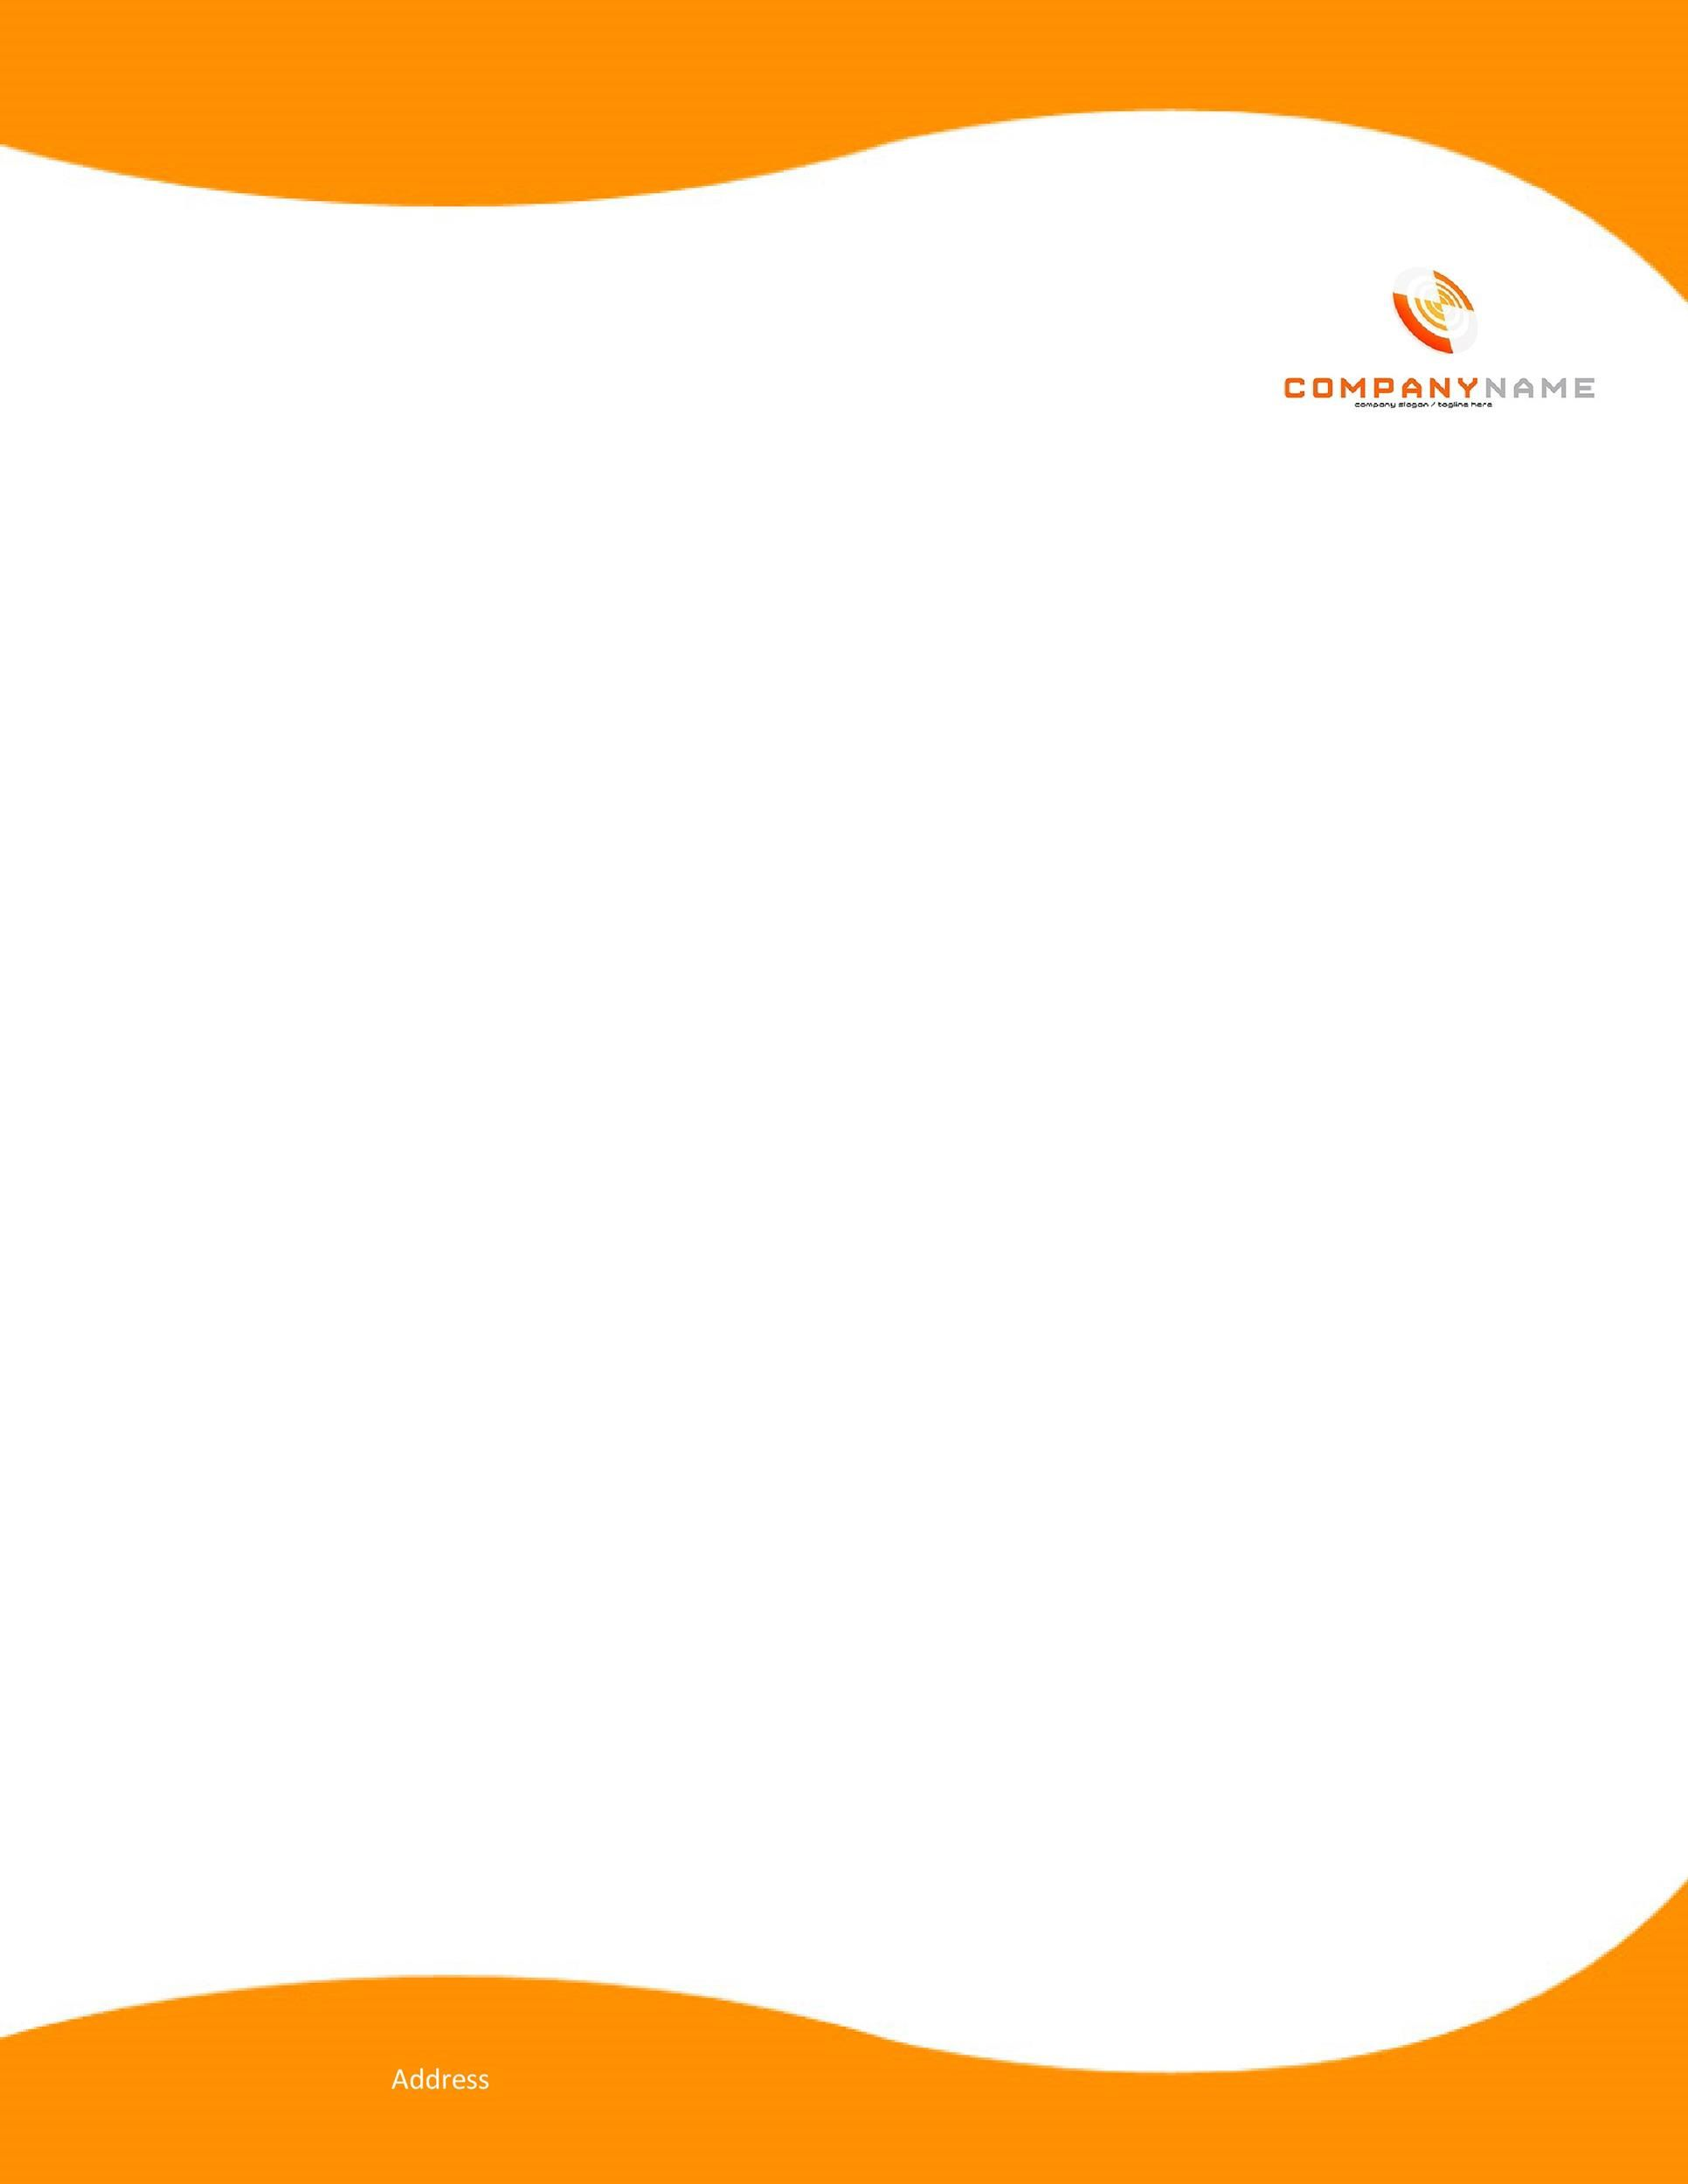 006 Stunning Letterhead Format In Word Free Download Pdf Highest Quality Full